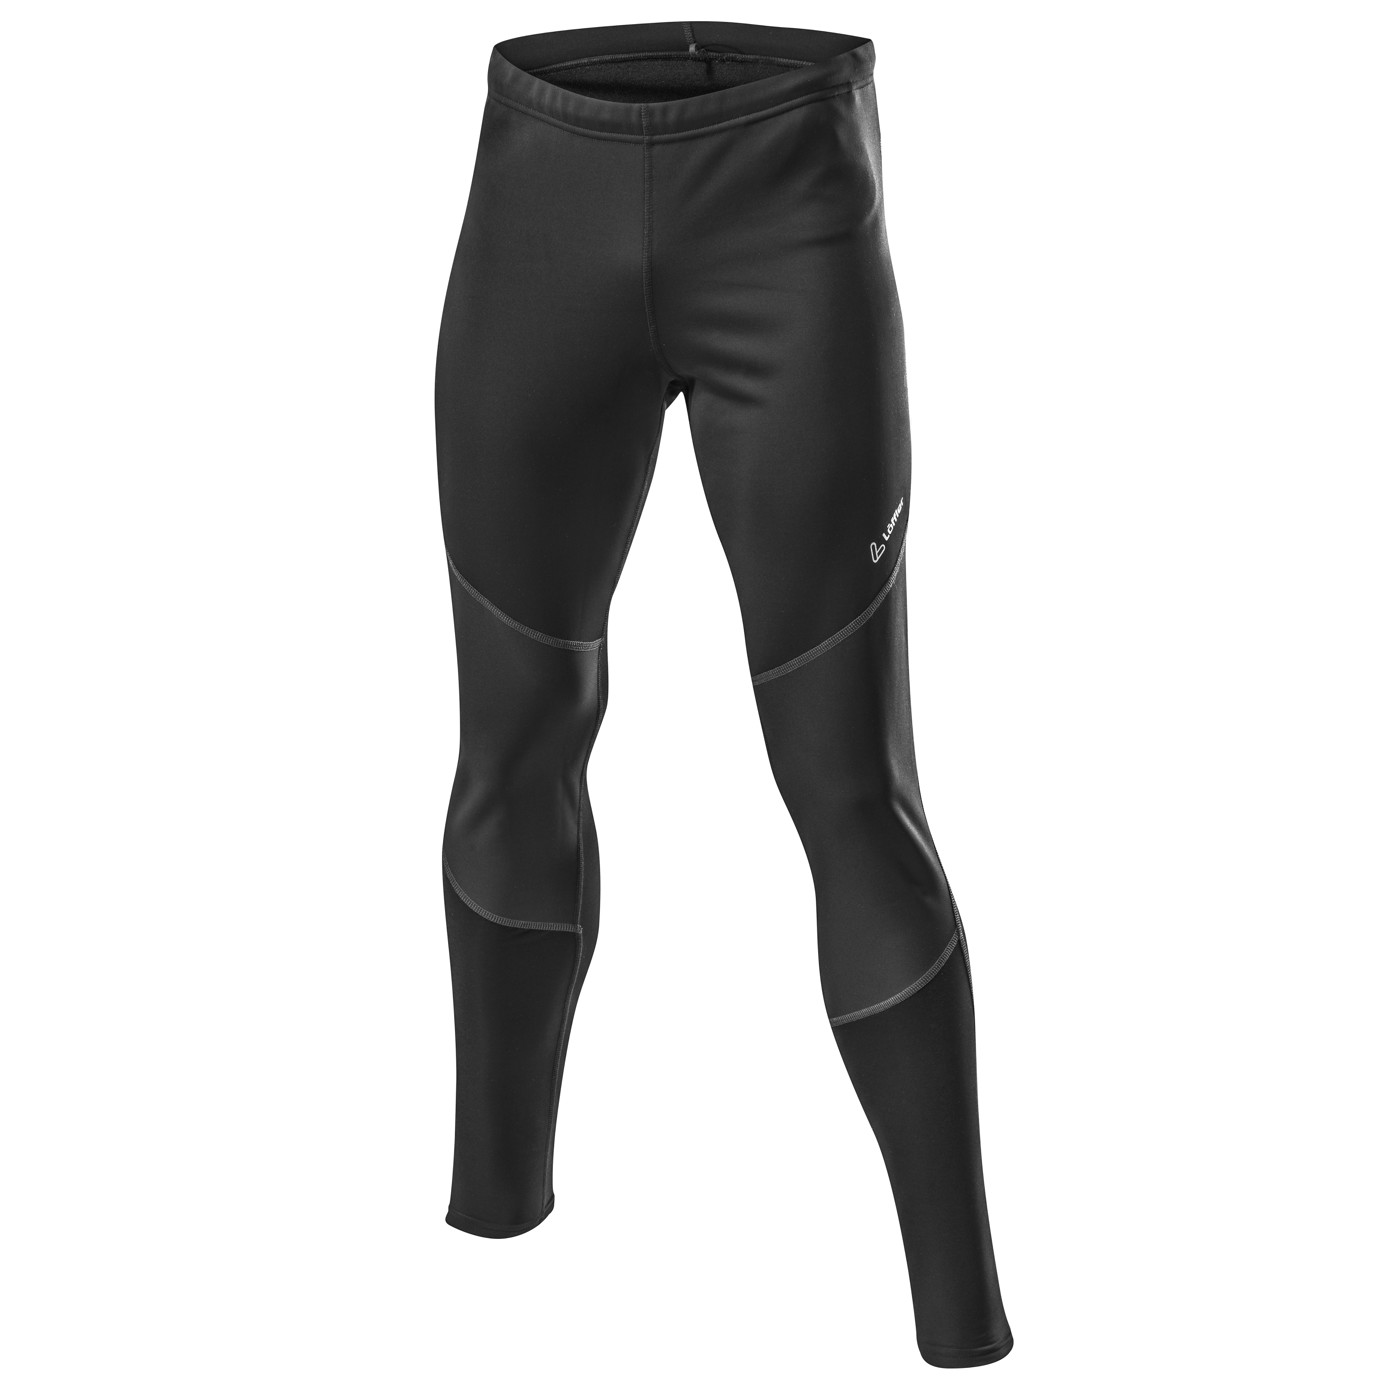 LÖFFLER M TIGHTS WS WARM - Herren